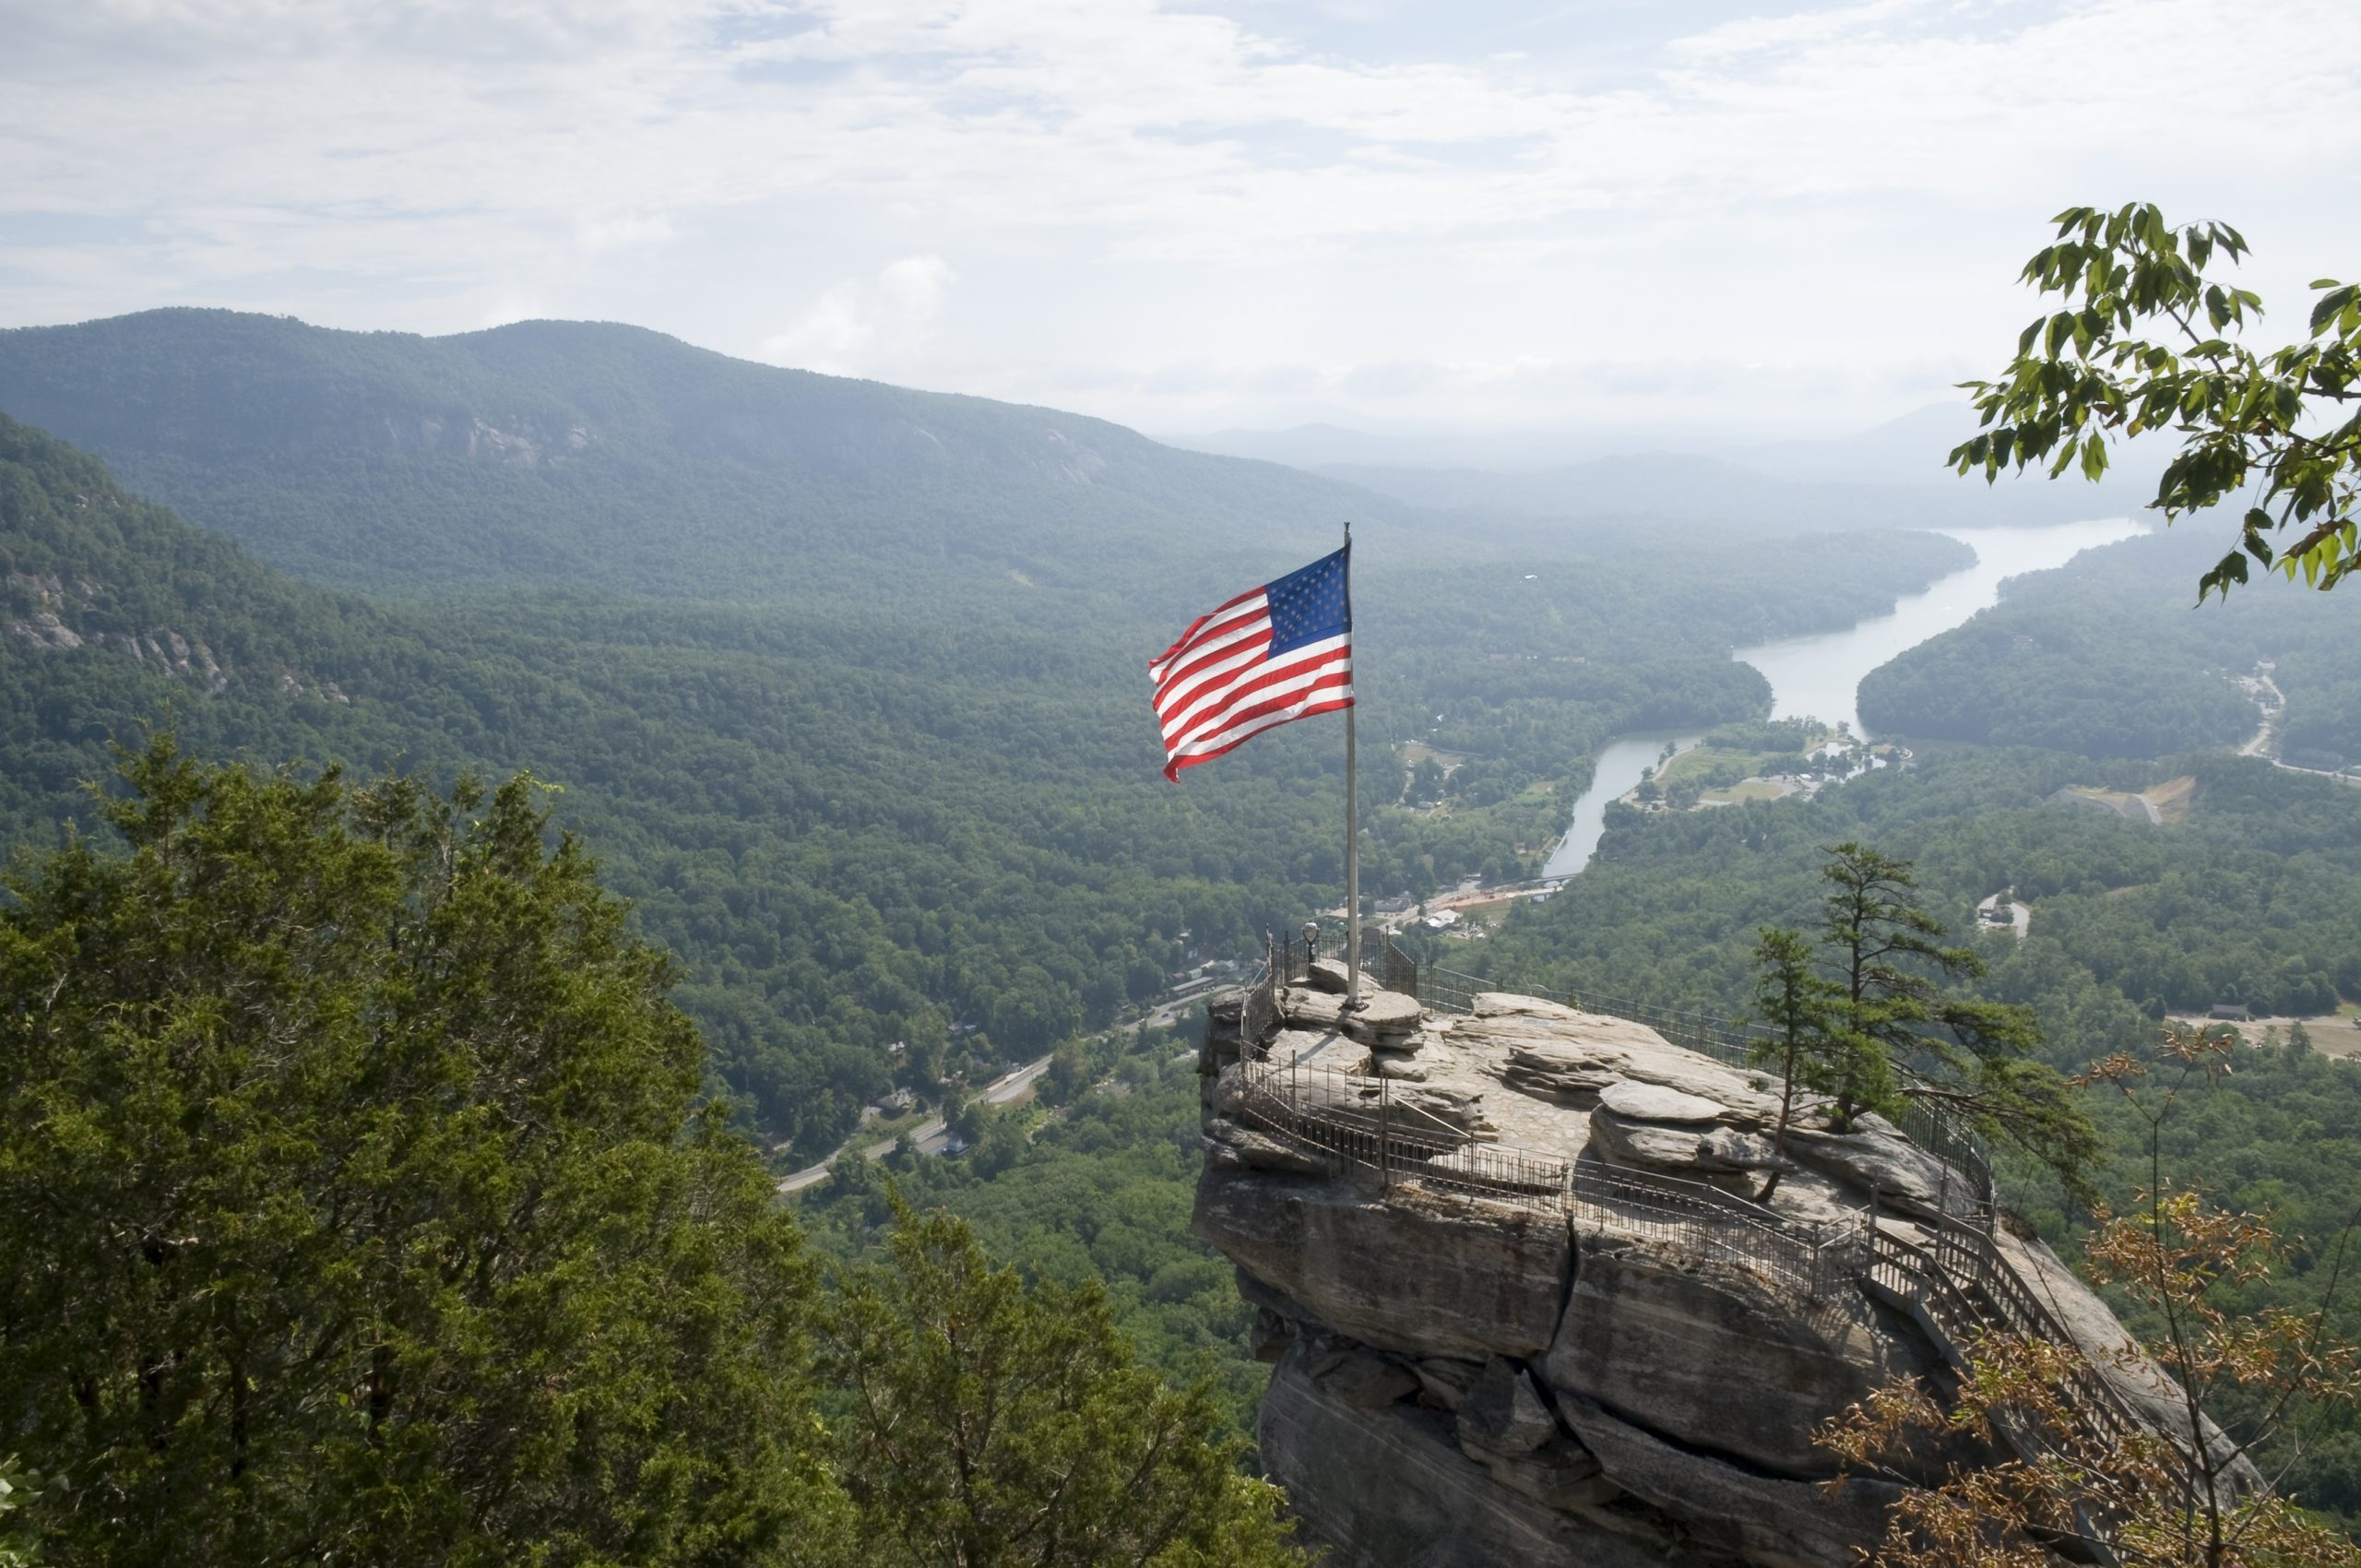 aerial shot of the top of Chimney Rock, North Carolina, with a waving American flag, and Lake Lure in the background among the Blue Ridge Mountains